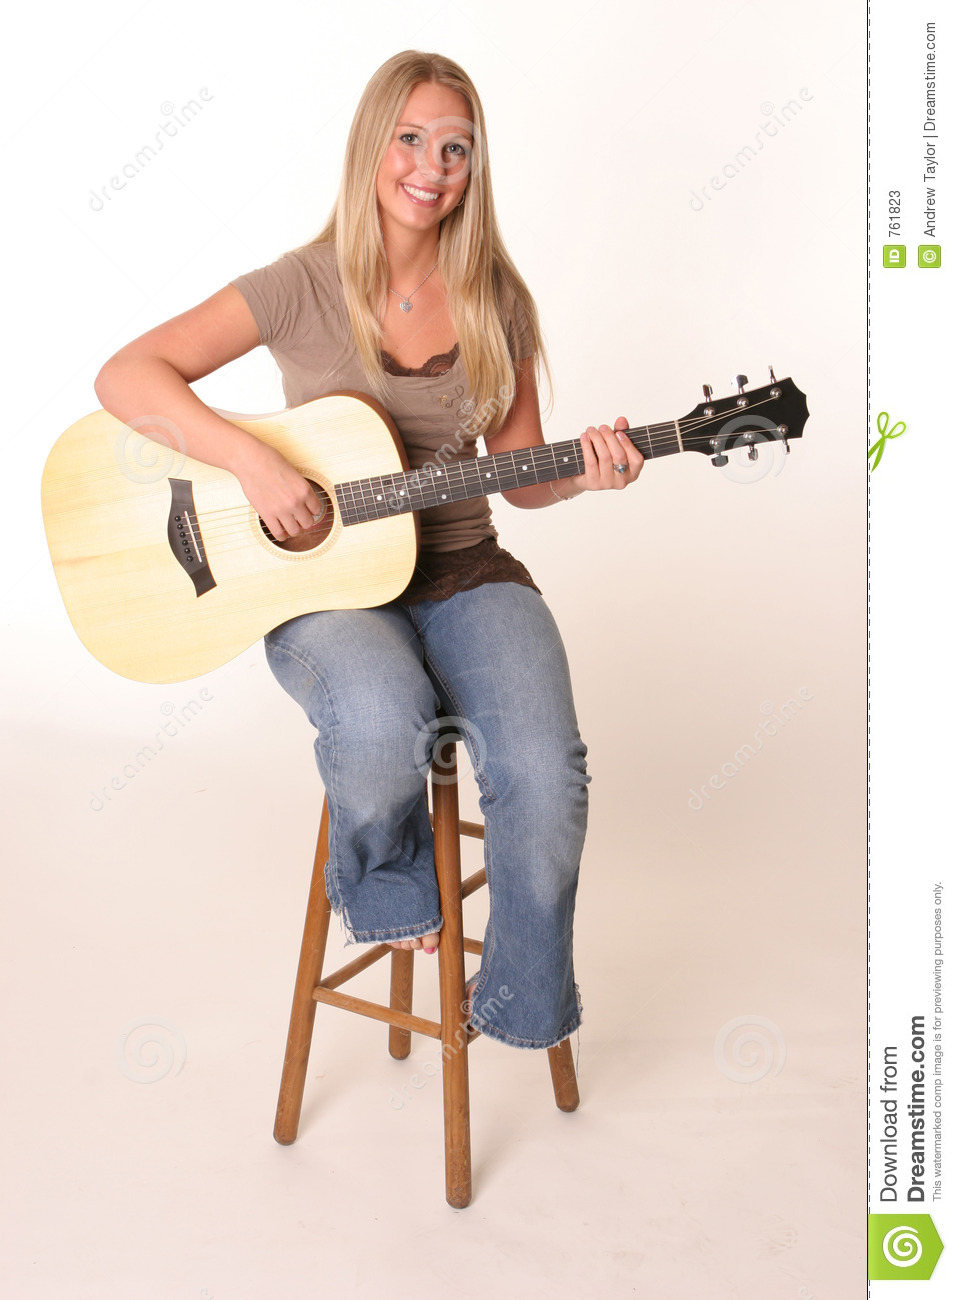 Blonde Teen Guitar Stool Stock Image Image Of Woman